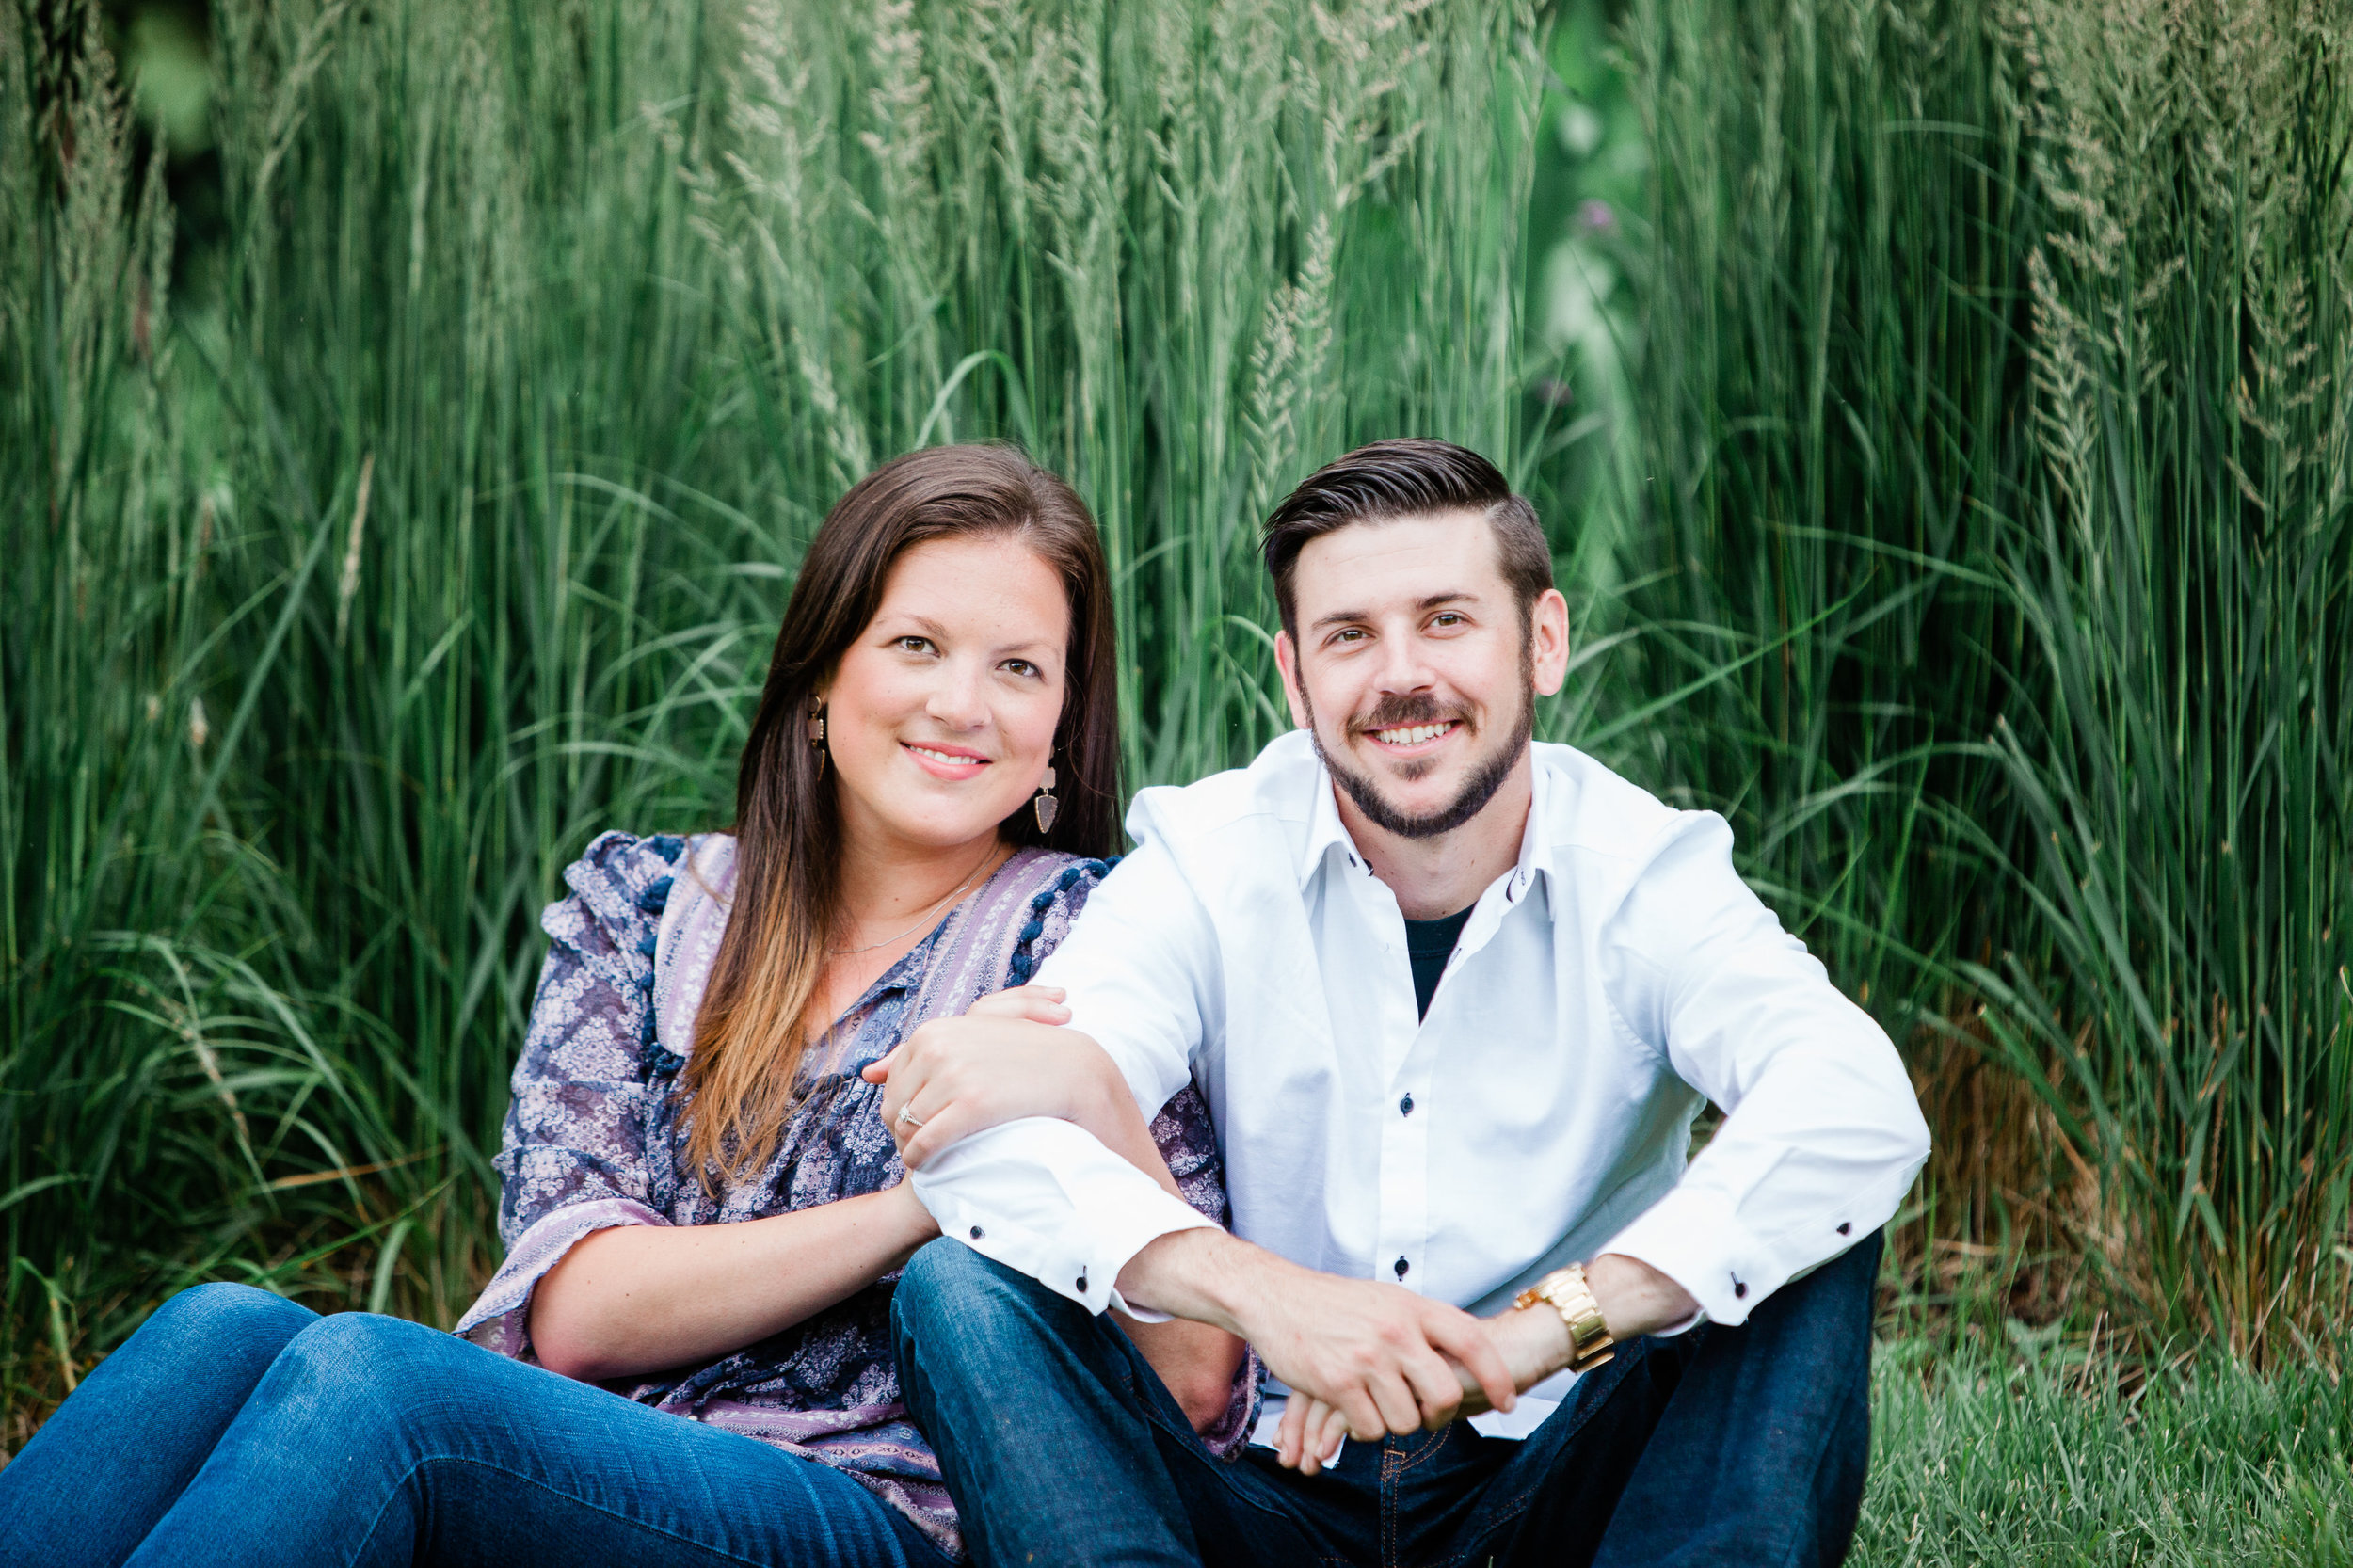 meadowlark_botanical_gardens_engagements-3666.jpg